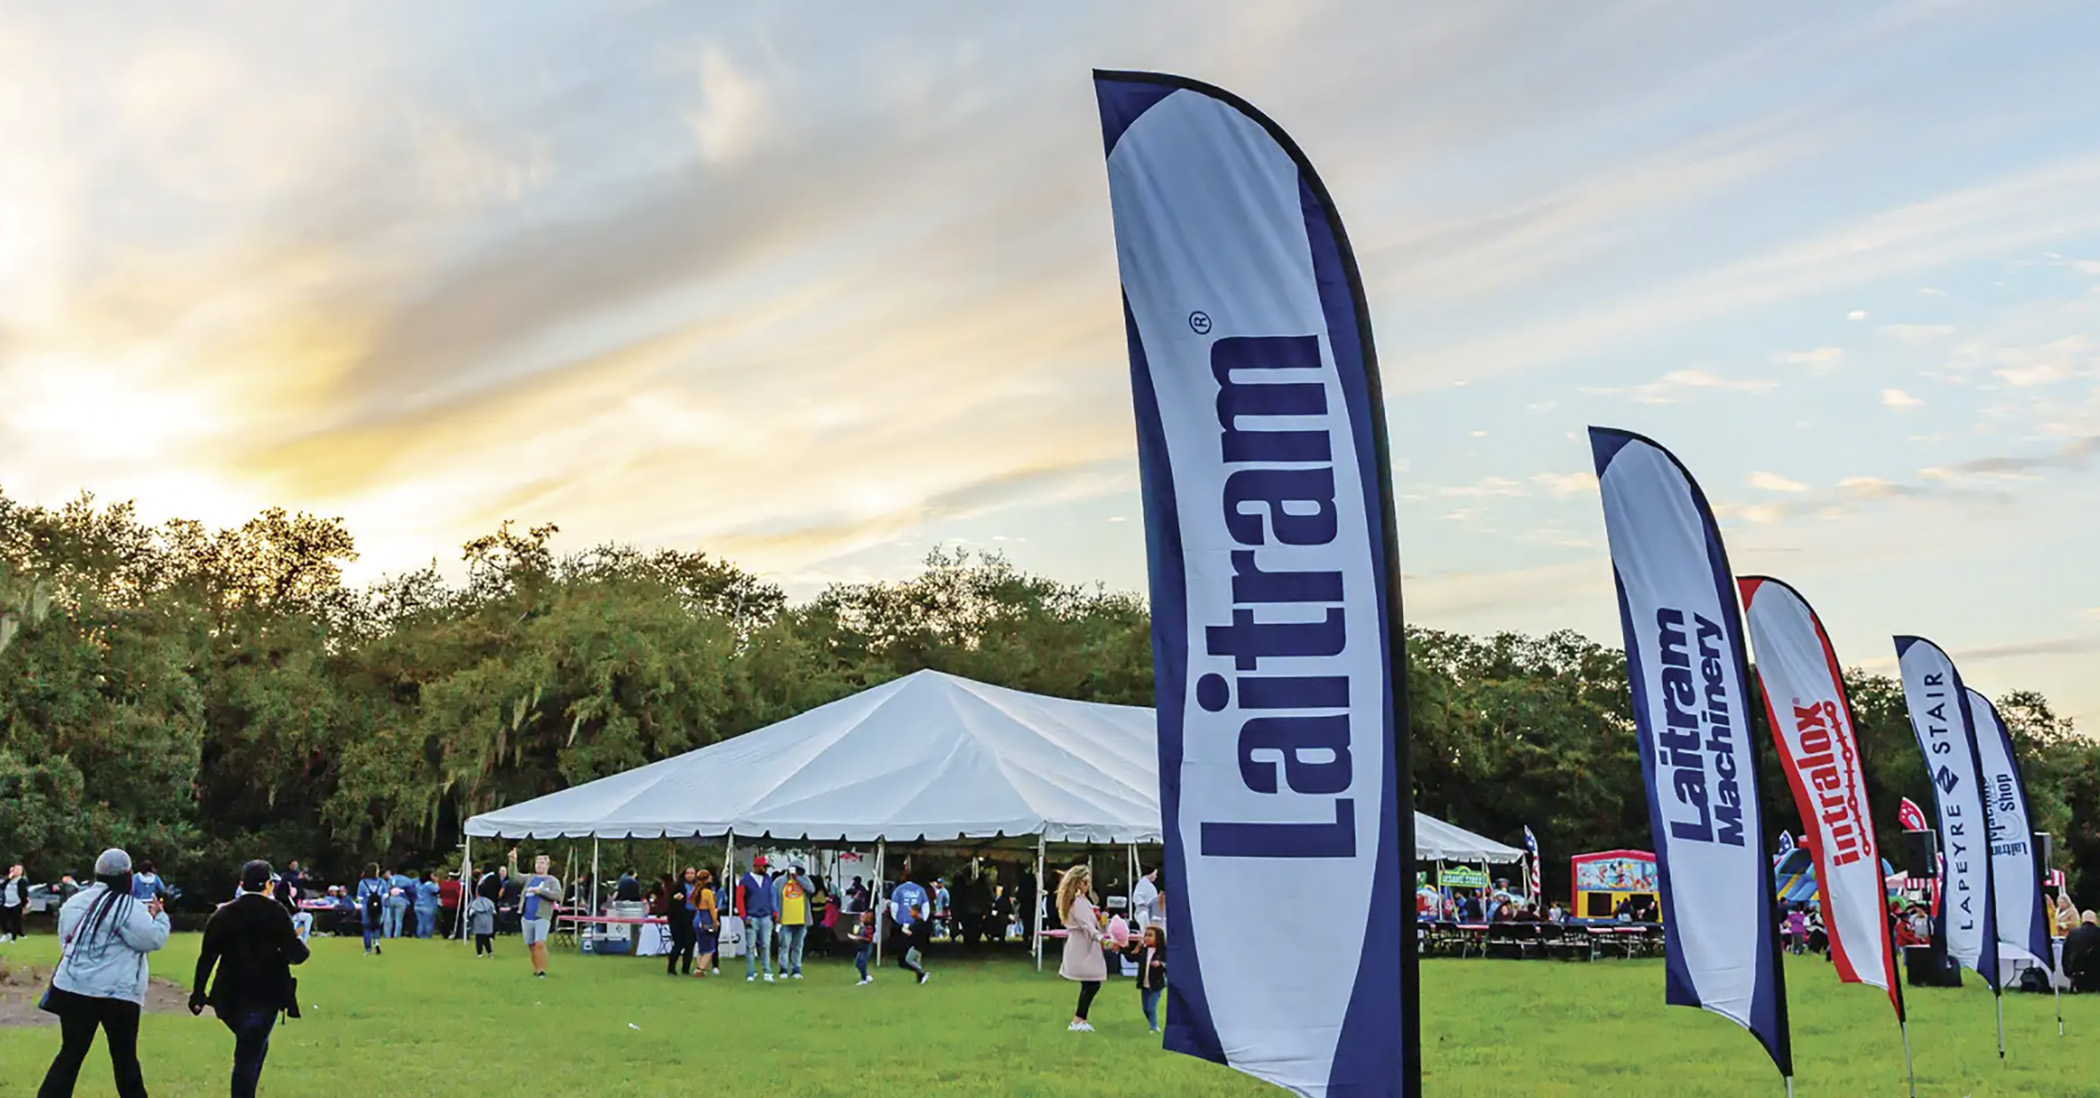 Laitram employee event on a grass field with a beautiful sunset